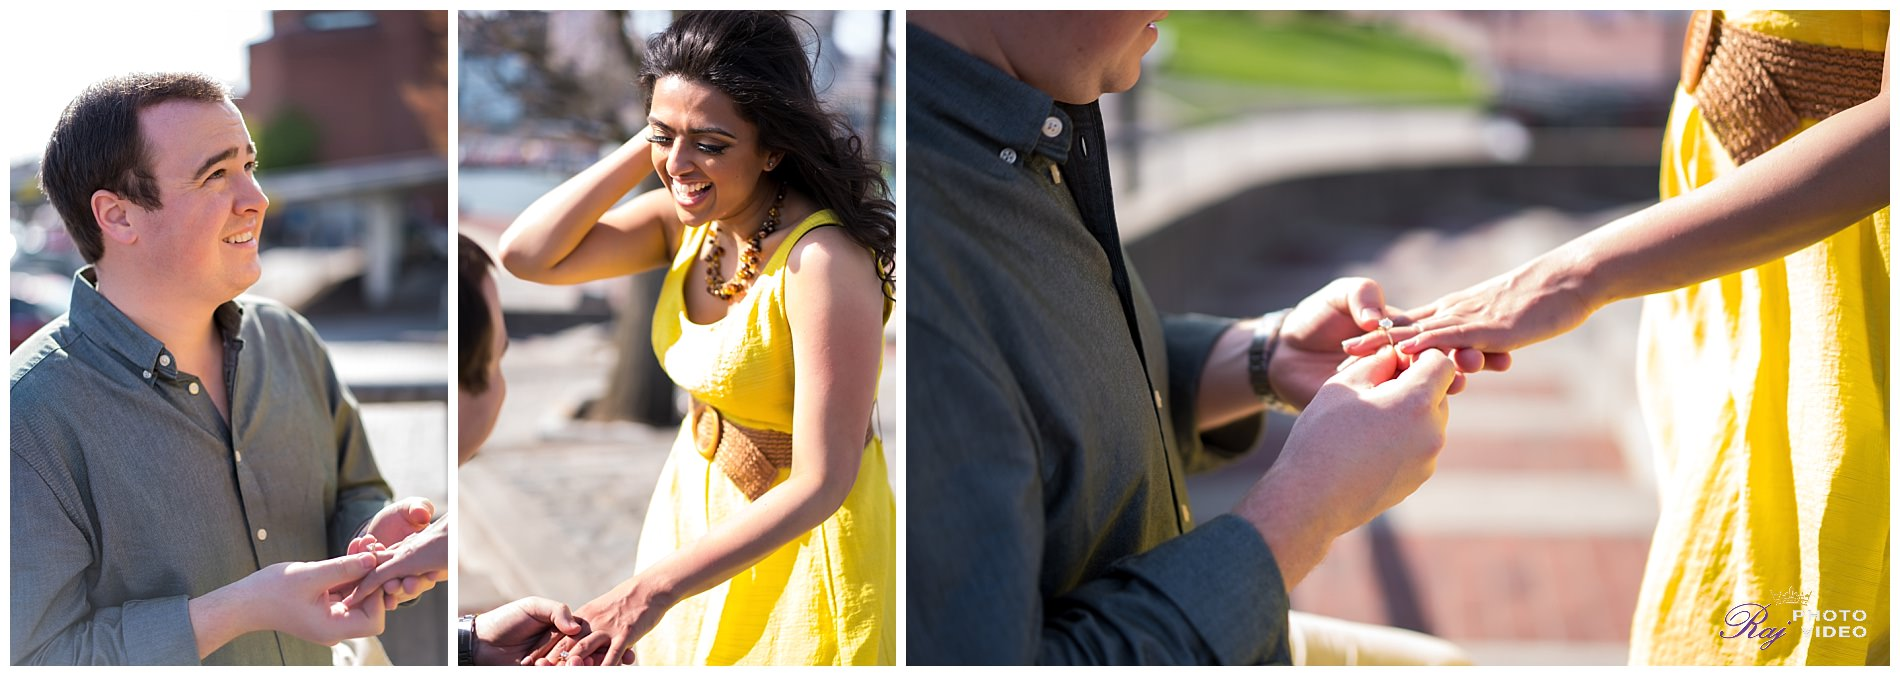 Baltimore-Maryland-Engagement-Shoot-Aditi-Peter-11.jpg